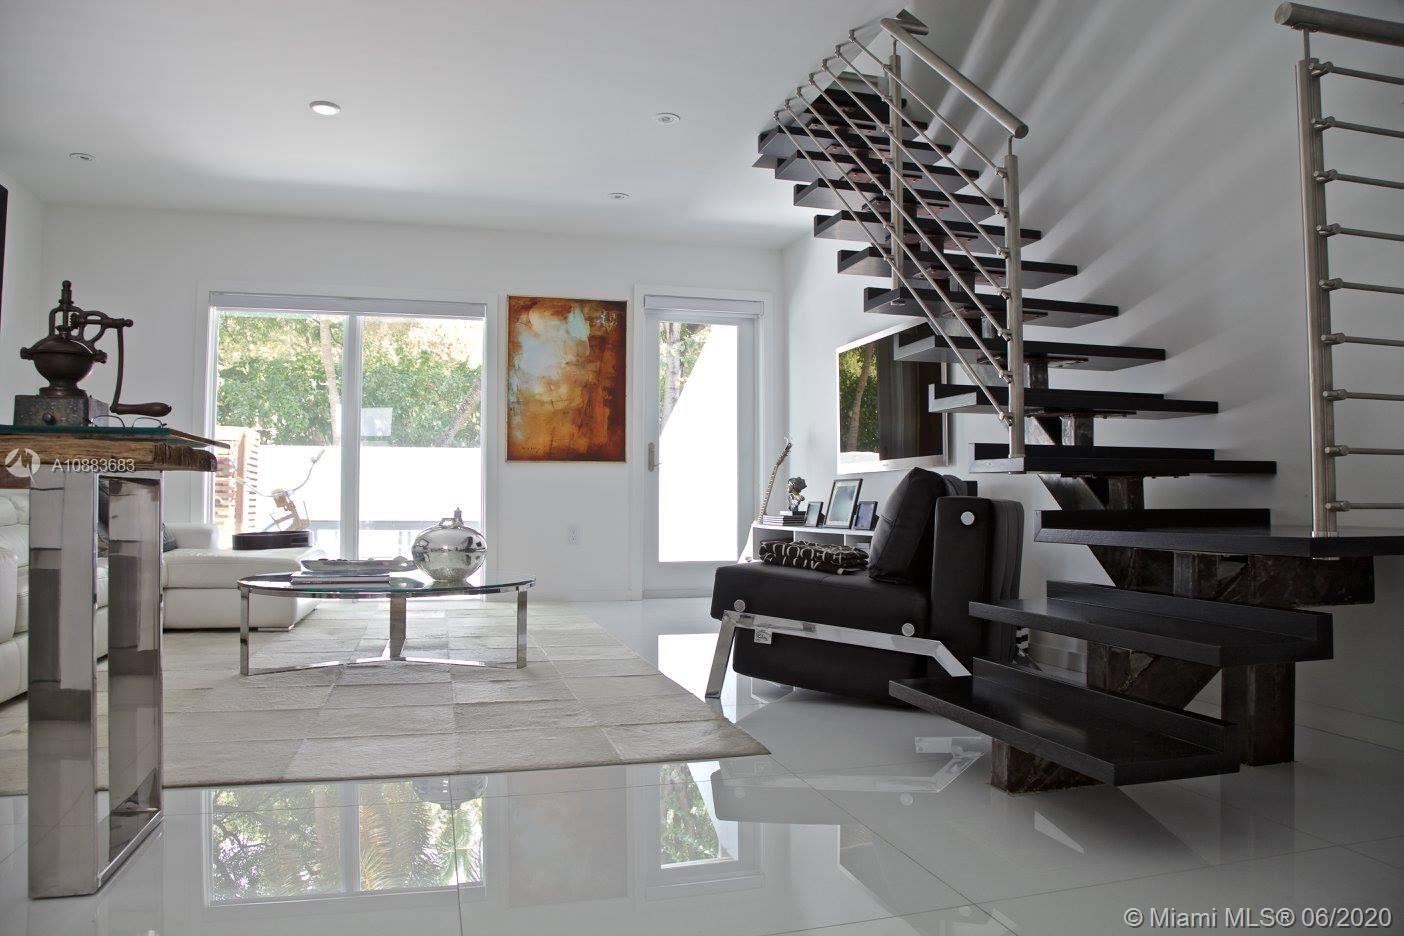 Completely remodeled Townhome in Key Biscayne! Perfect for investment or to live the island life. 1 bedroom/1 bathroom. Pristine white porcelain tile throughout, modern white kitchen w/designer stainless steel appliances (Liebherr, Miele),  architectural floating wood/metal staircase by Bellastairs, master bedroom upstairs w/custom closets, private patio/terrace w/marble flooring. Walk to the beach. Centrally located to the restaurants, shops and park. Maintenance includes cable, internet, water/sewer. Pet friendly. Parking space located directly in front. Short term rentals min 30 days accepted.